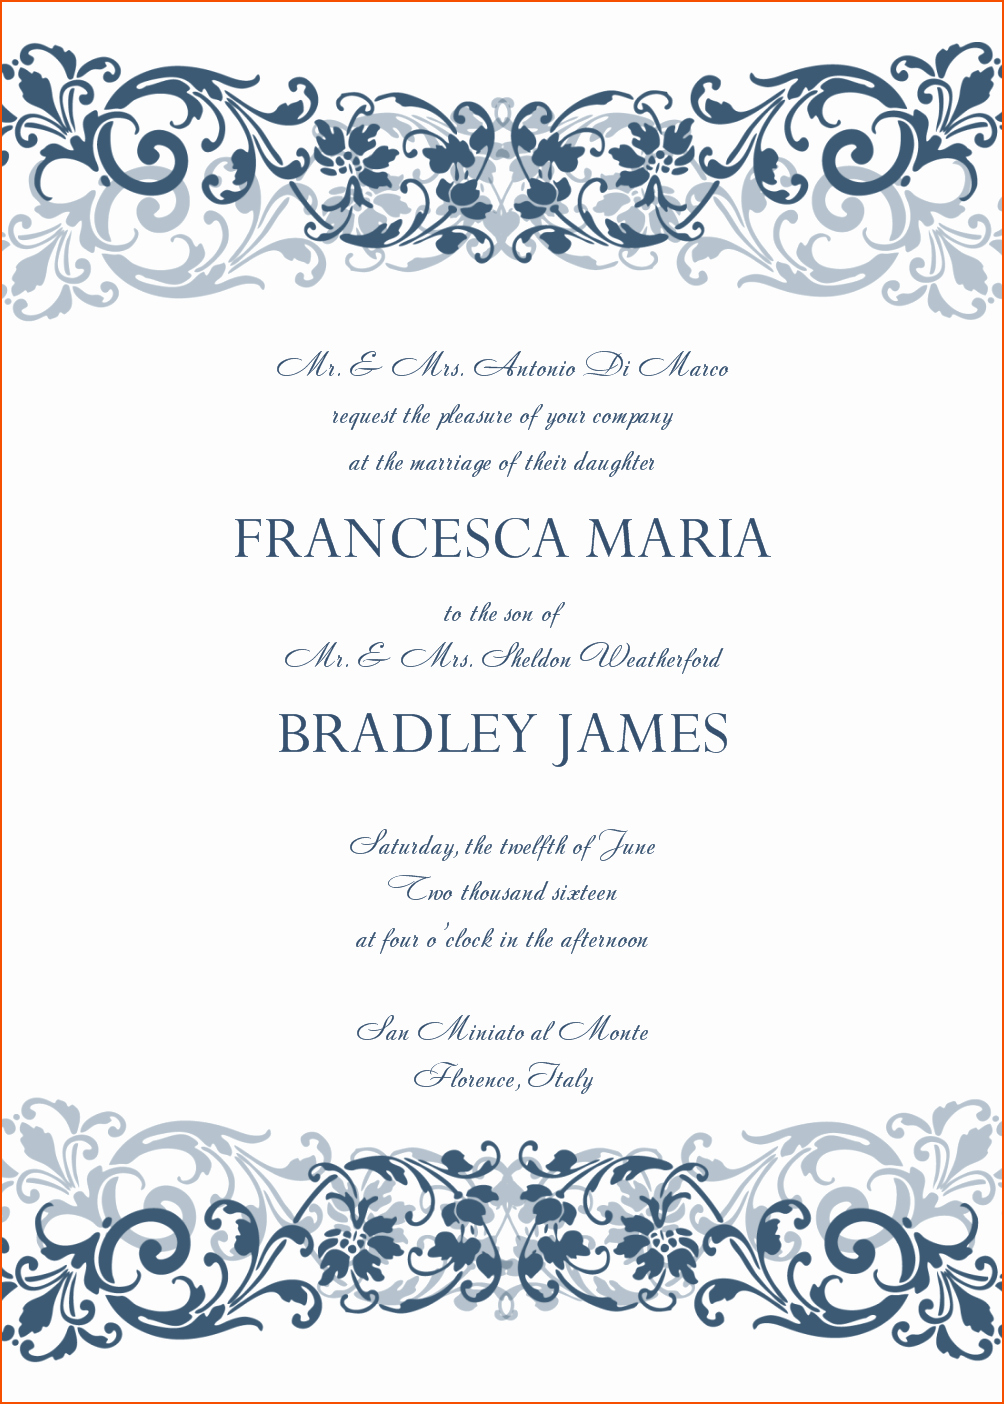 8 Microsoft Word Wedding Invitation Templates